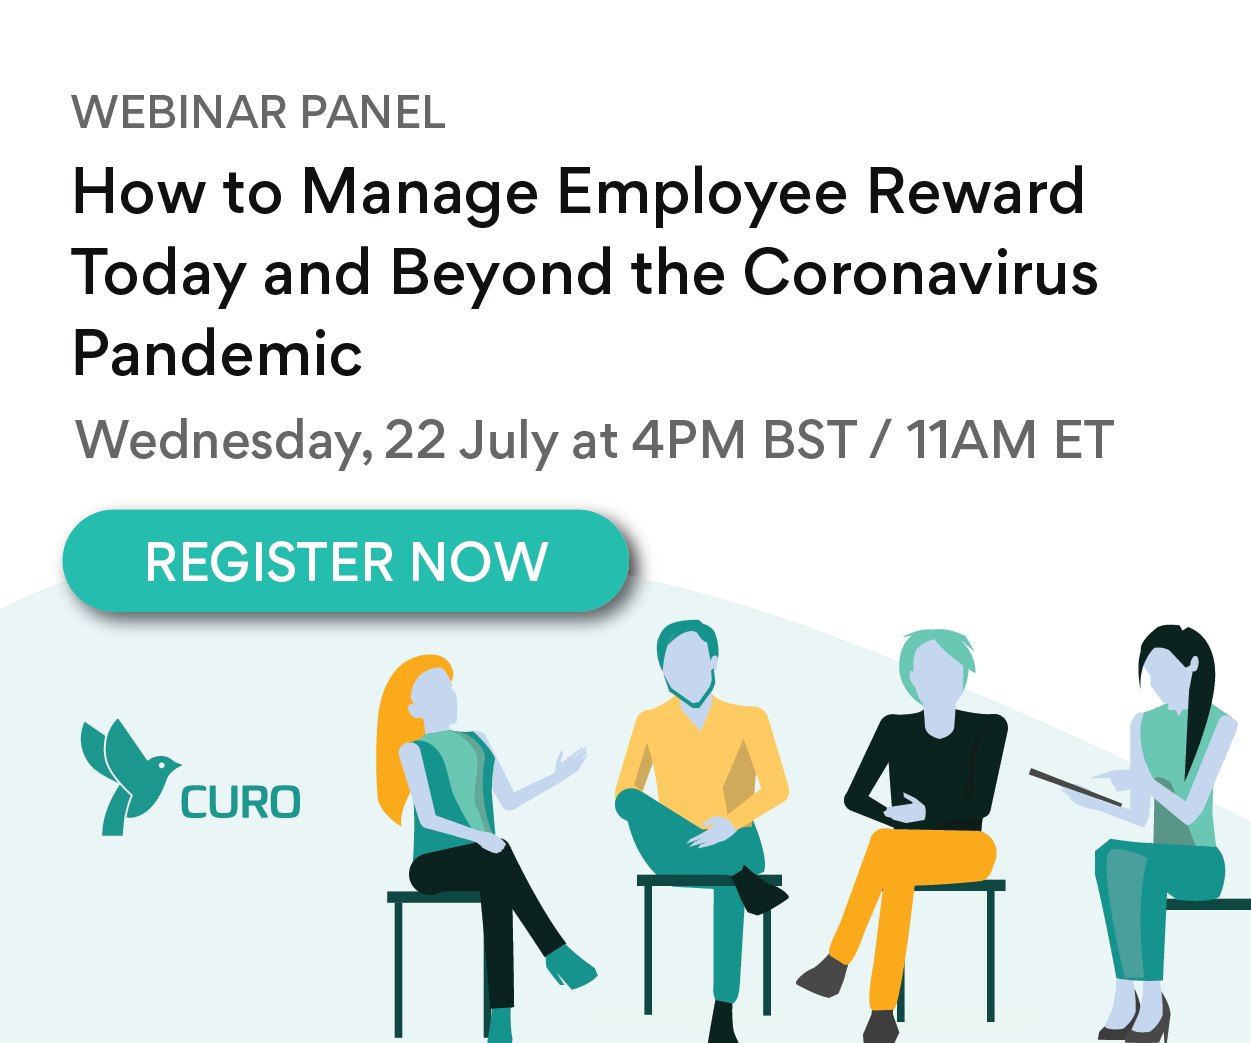 How to Manage Employee Reward Today and Beyond the Coronavirus Pandemic